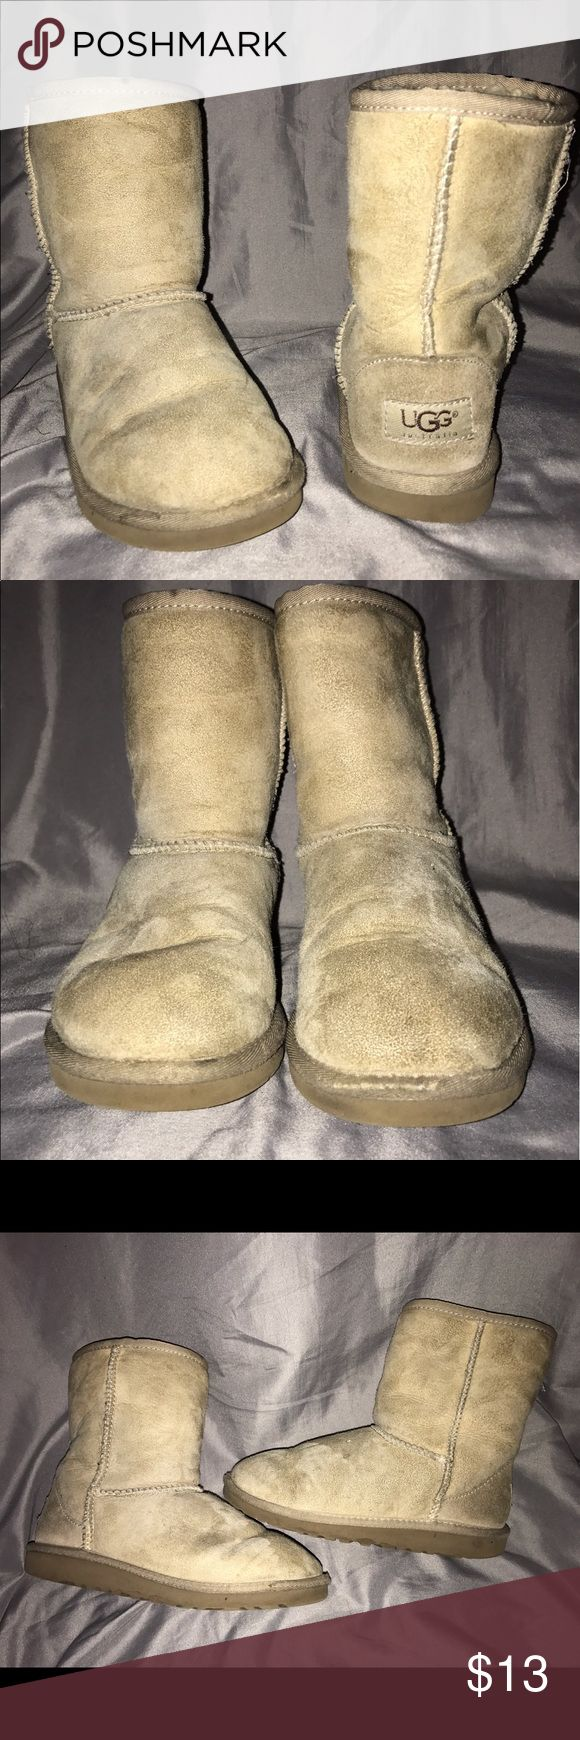 Kids UGG boots These have been used a lot and have wear on the toes. They are dirty and need cleaning, please see pictures for more details. UGG Shoes Boots